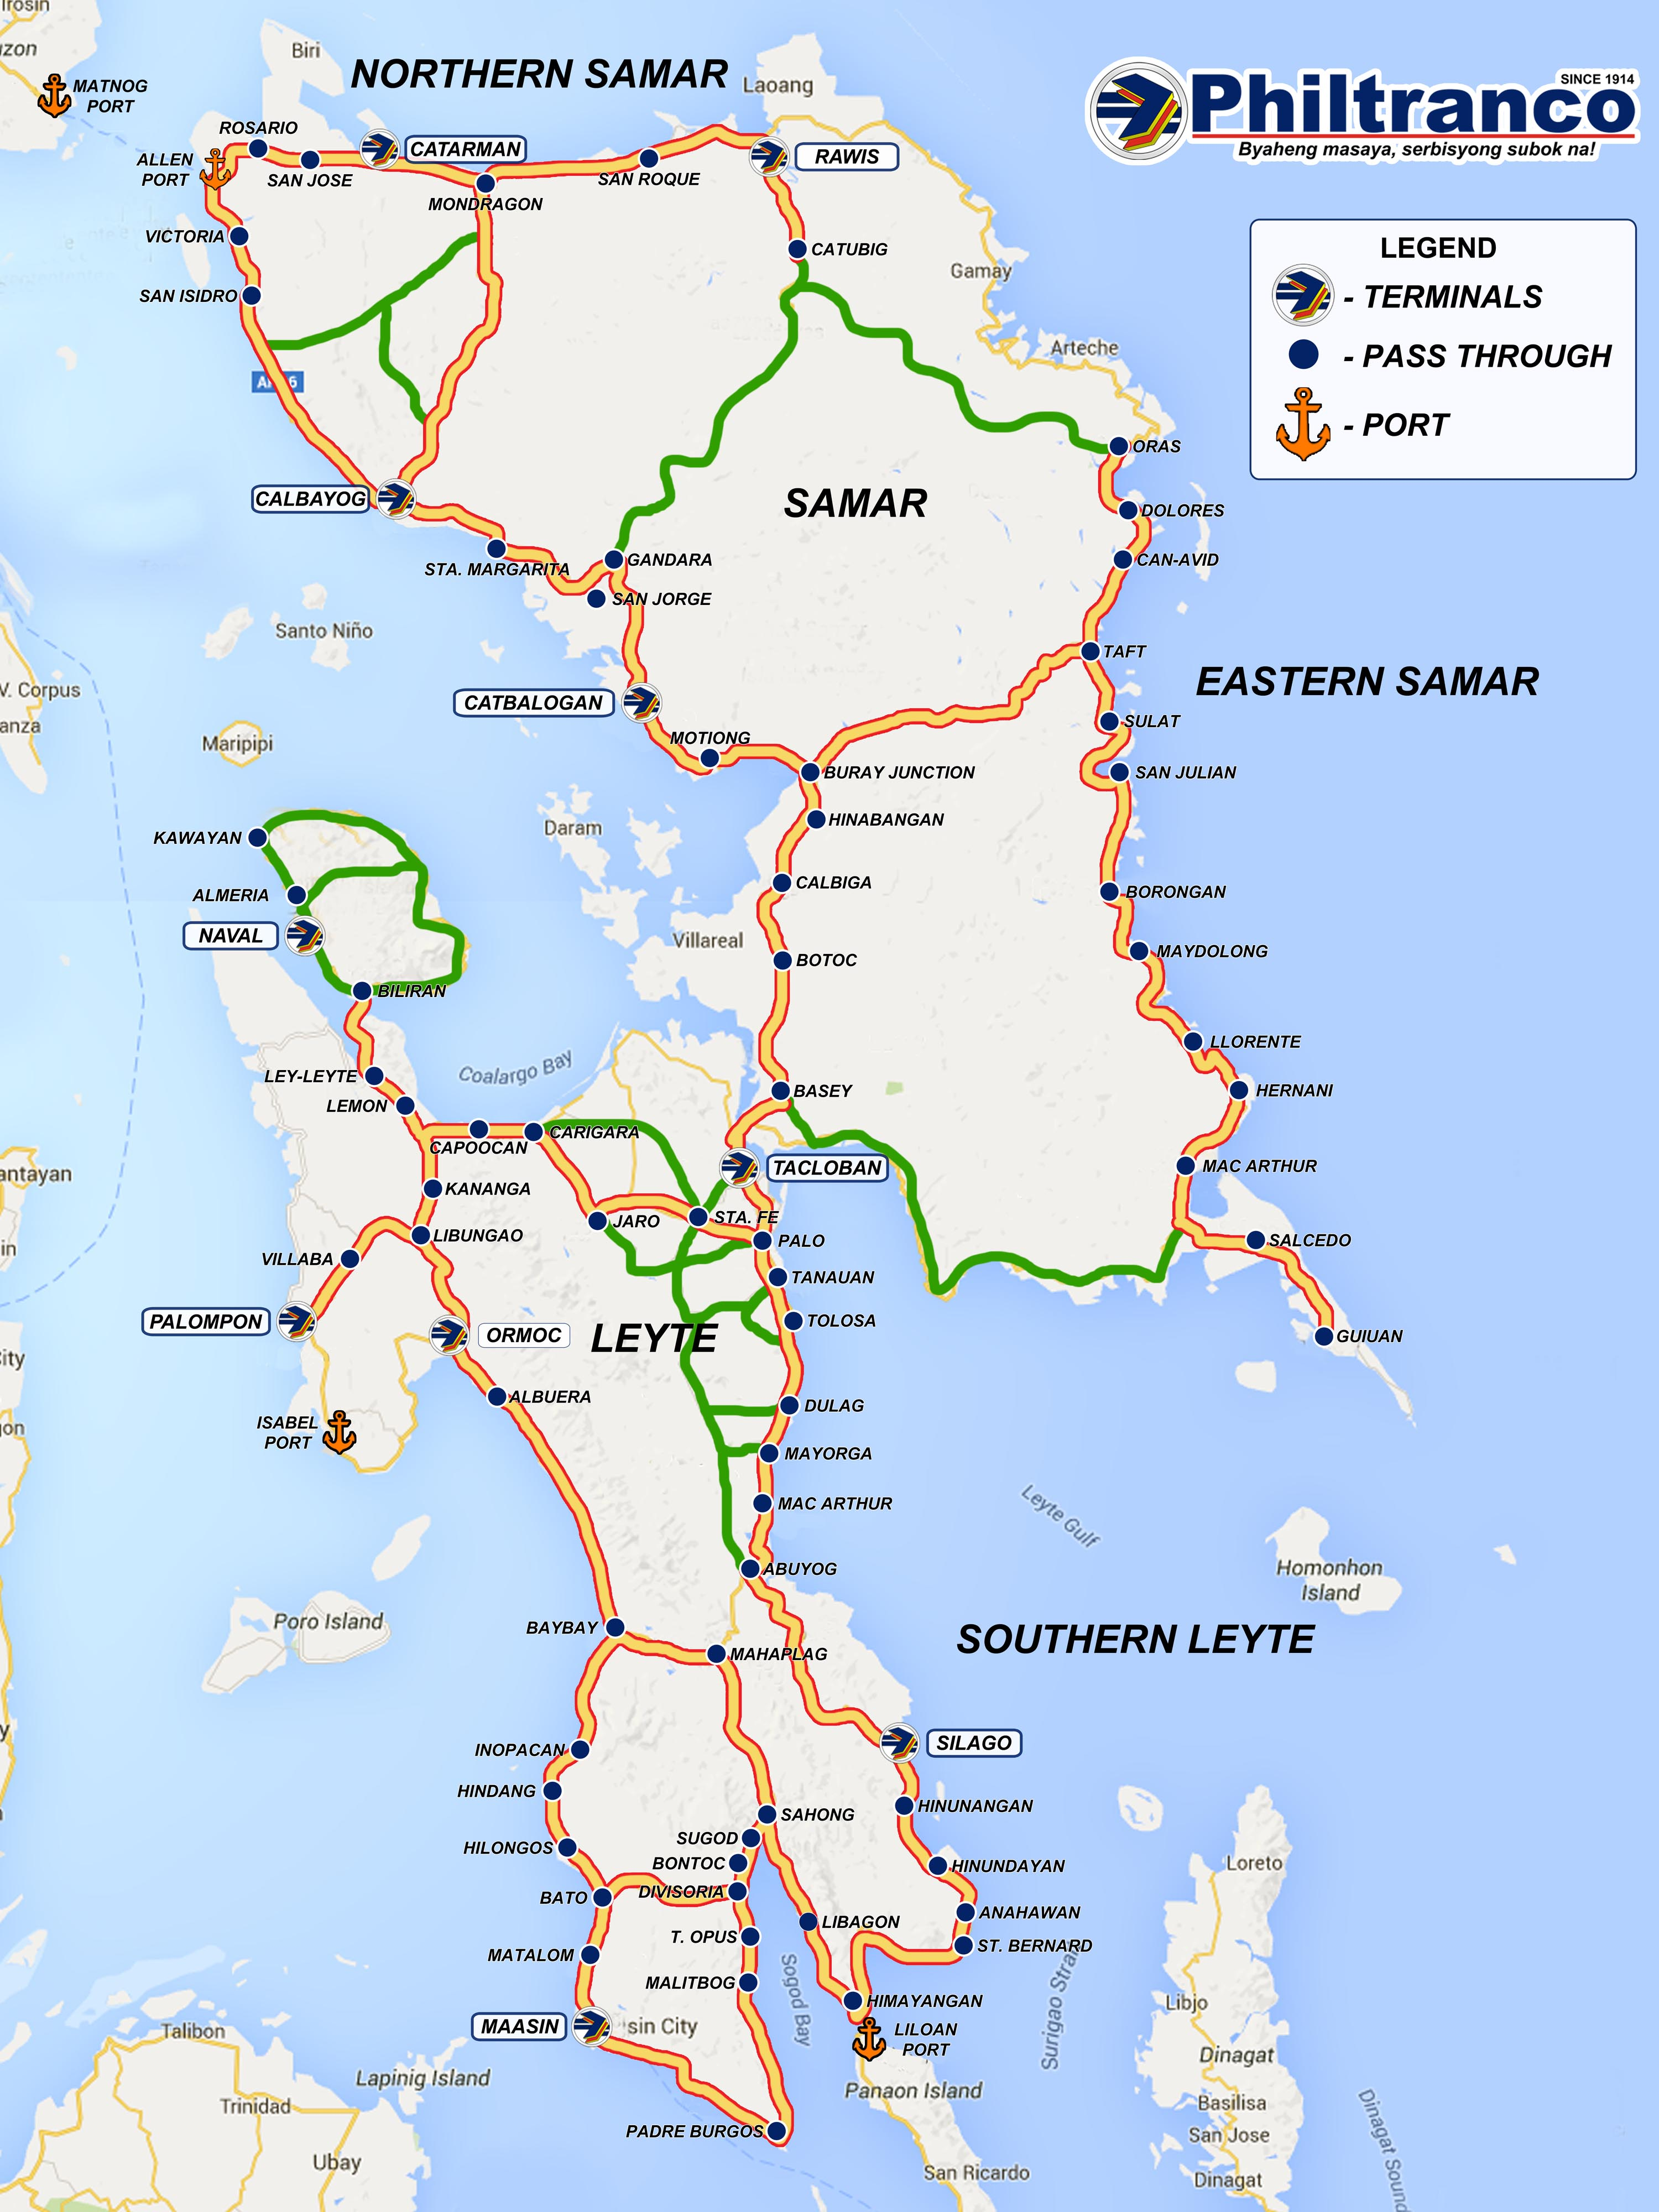 mindanao map with Services on Cagayan De Oro Golden River likewise Map Of Mindanao Ph Um76VZ7Hx 7C1JZtCjyoclRxlF 7CVvUr8yEkVdbGWRFyM4 likewise Bukidnon as well Budget Airlines In The Philippines as well 14.